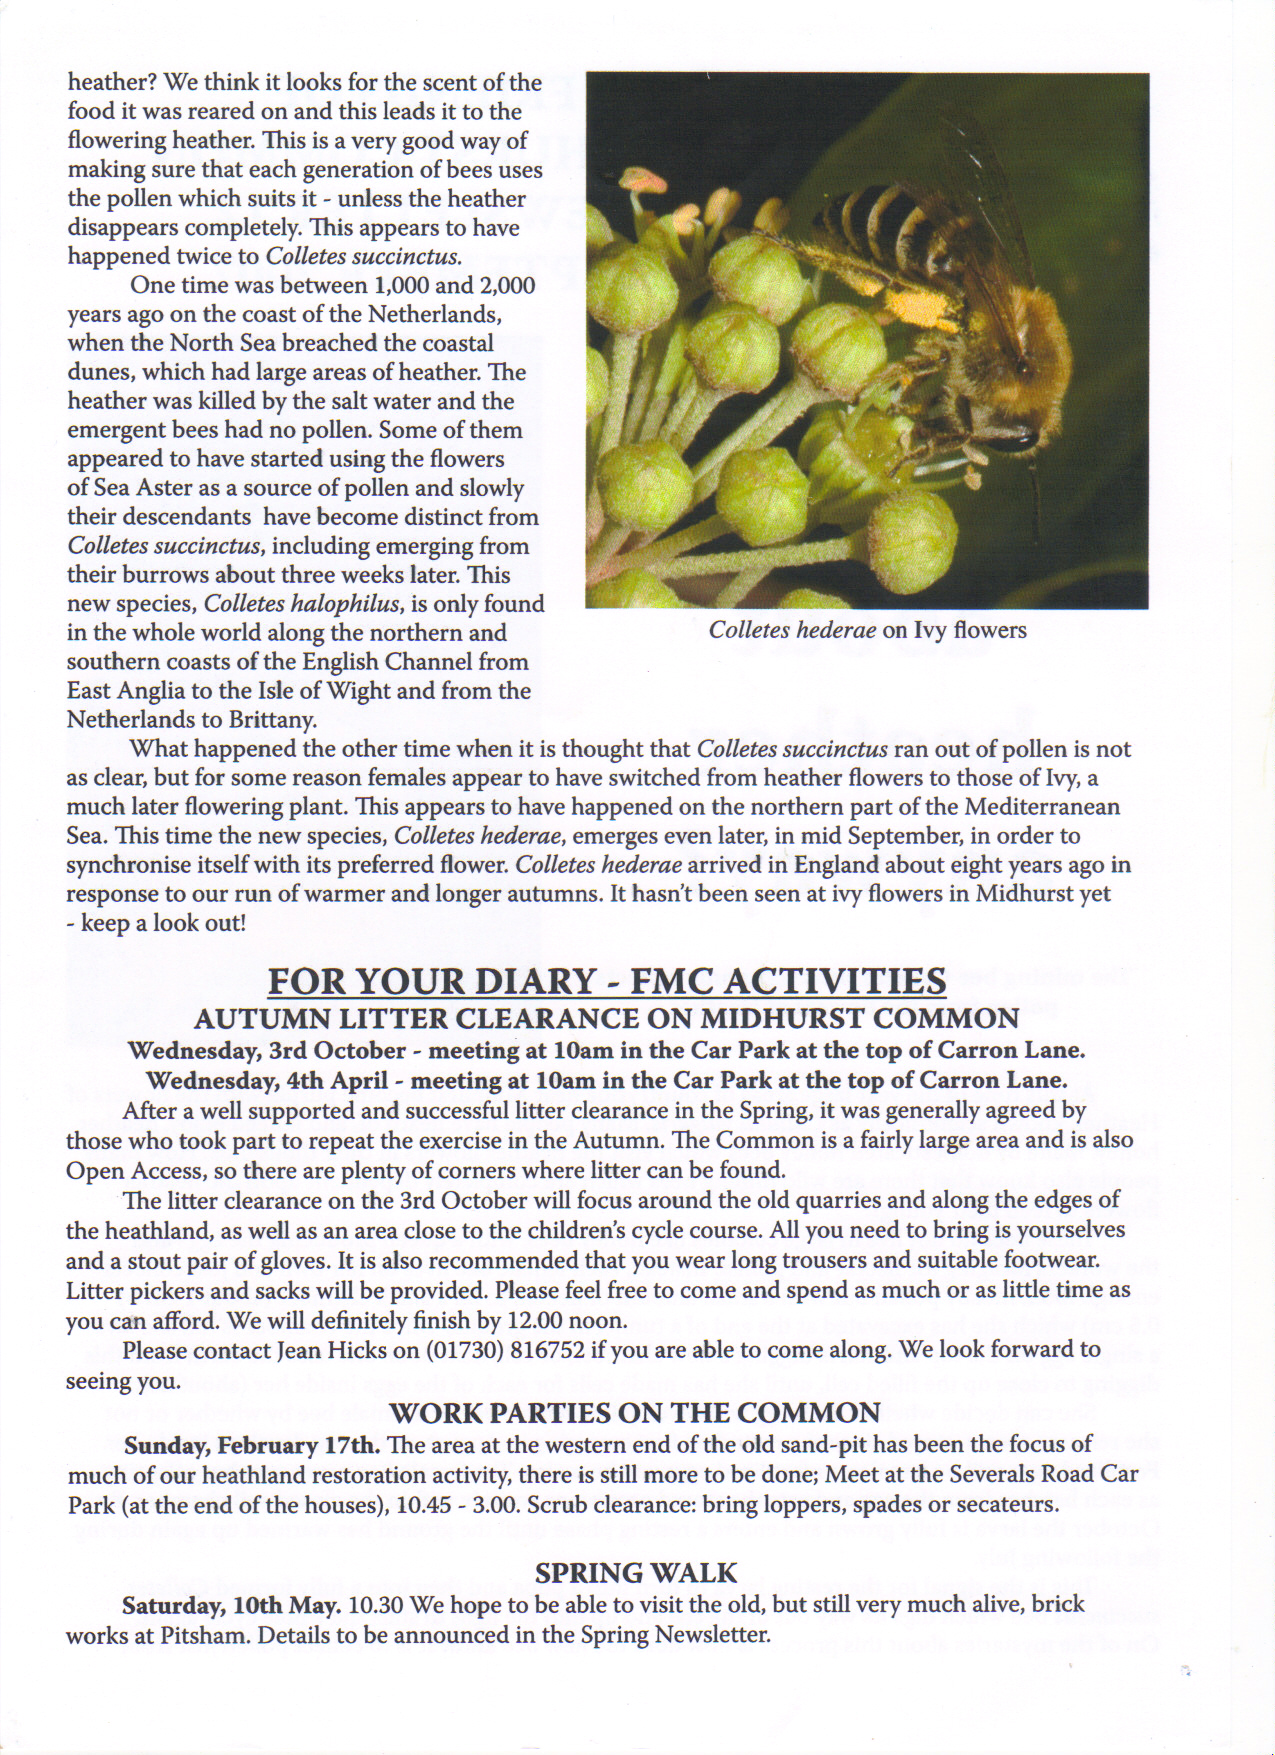 Newsletter no 12 part 2 of 2 September 2007